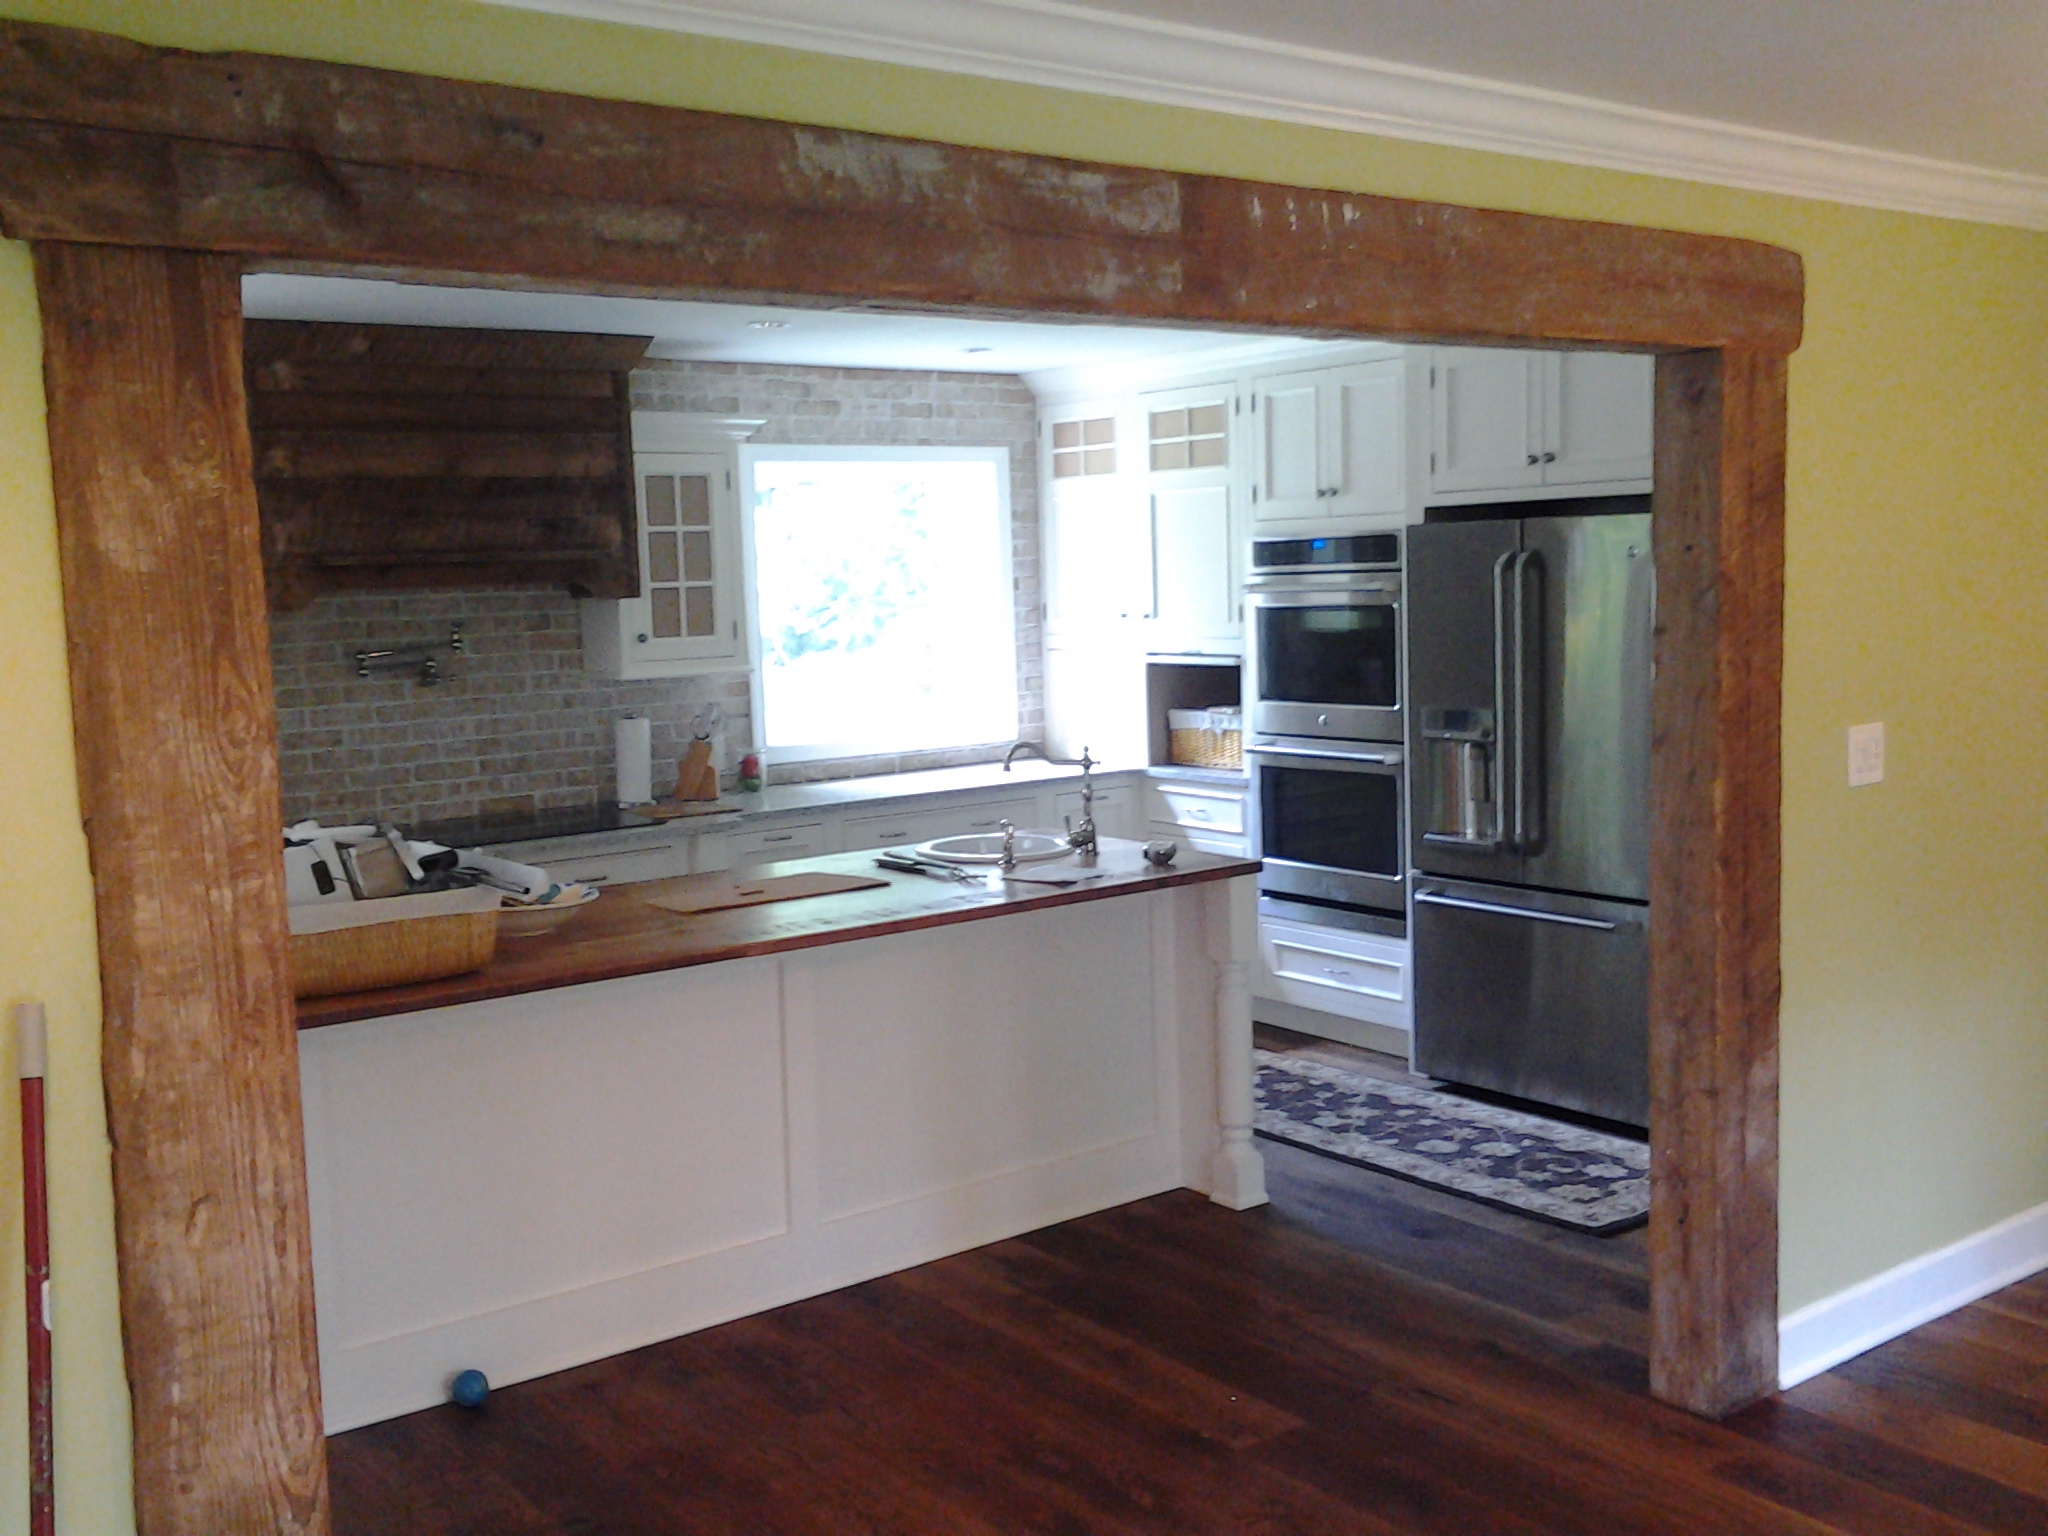 Kitchen Remodel - Custom Woodworking